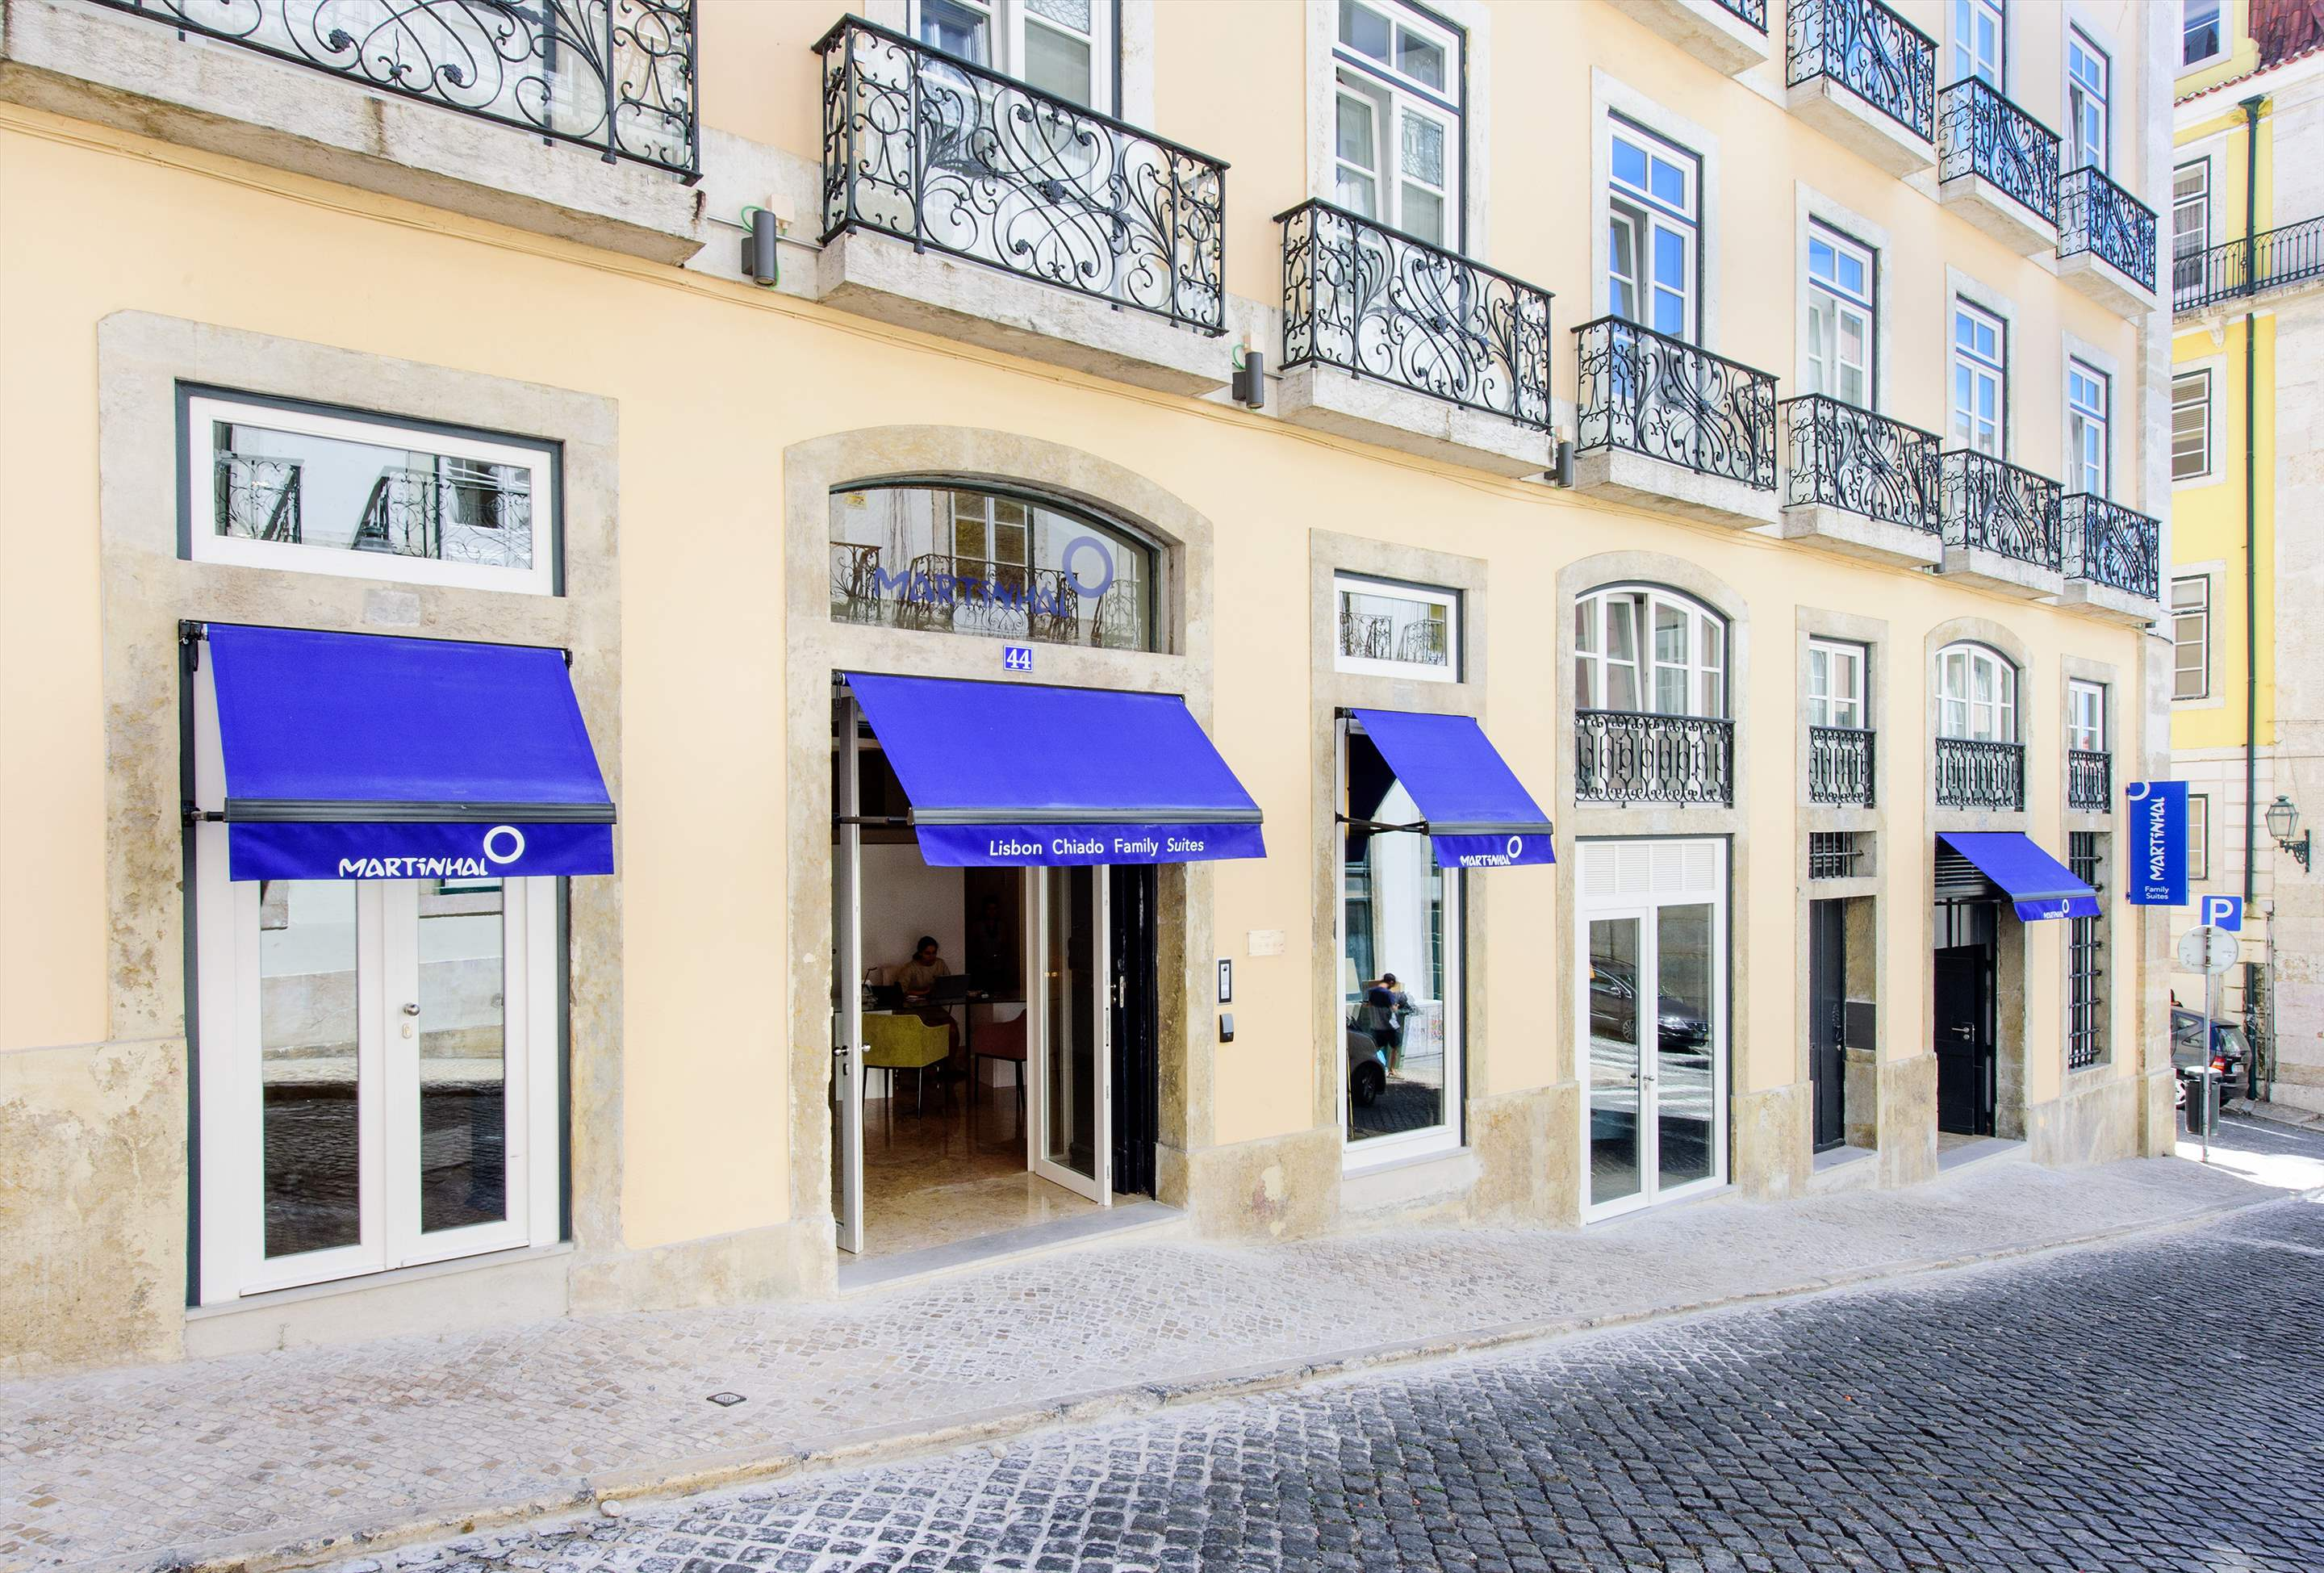 Martinhal Chiado Family Suites, Superior Deluxe Apartment One Bedroom with bunkbed, 1 bedroom apartment in Lisbon Coast, Lisbon Photo #9